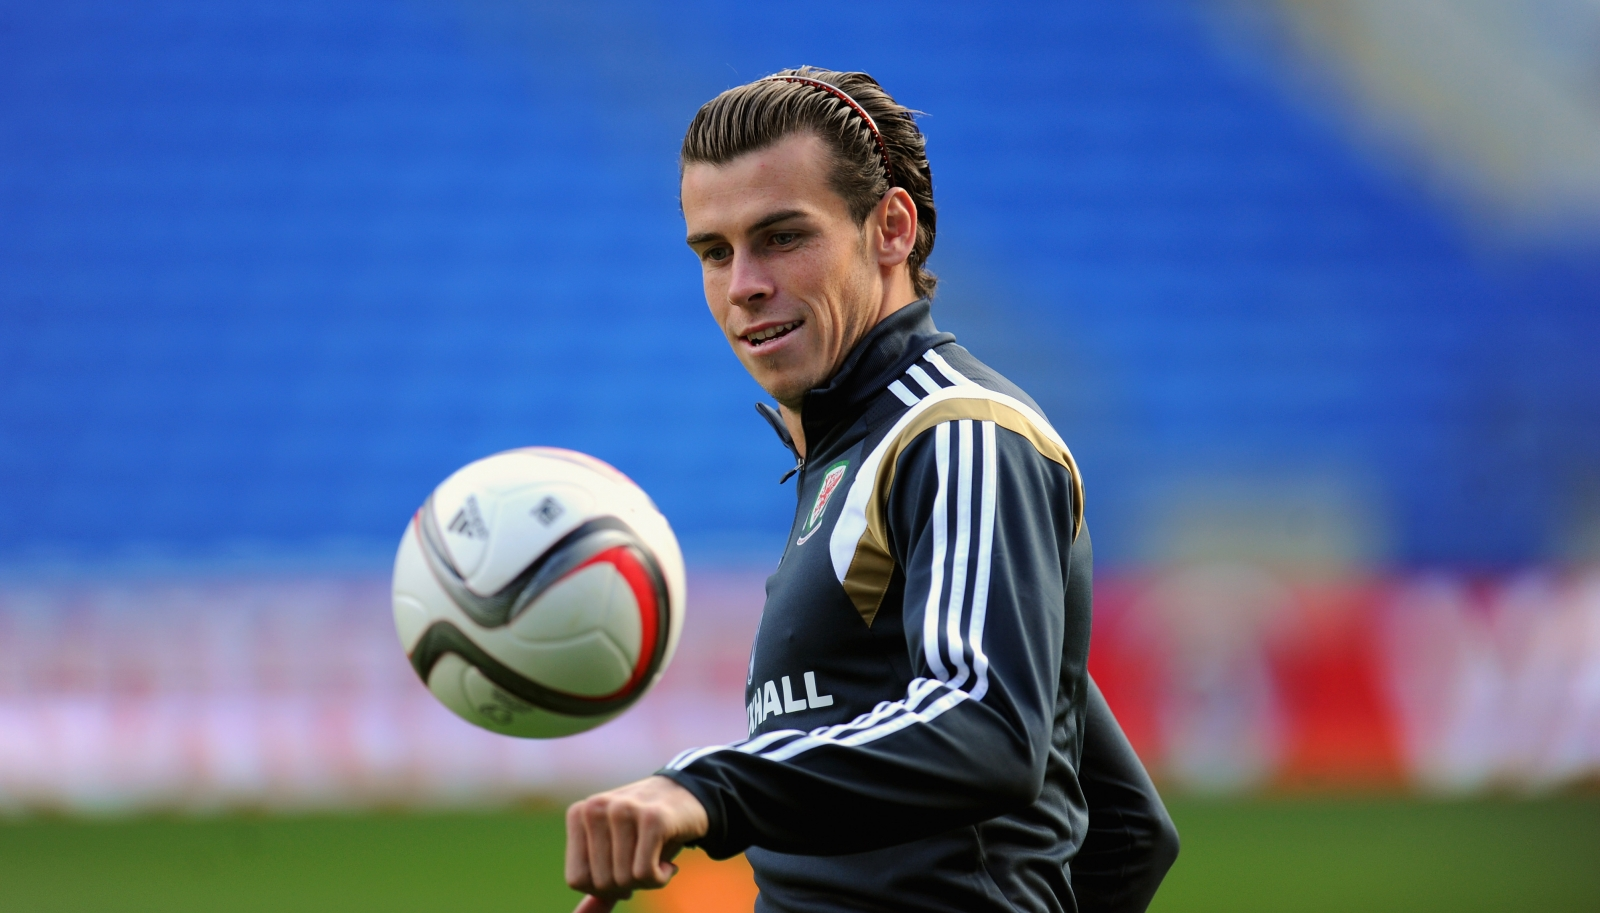 Gareth Bale 'selfish' as Manchester United speculation adds to rising pressure at Real Madrid